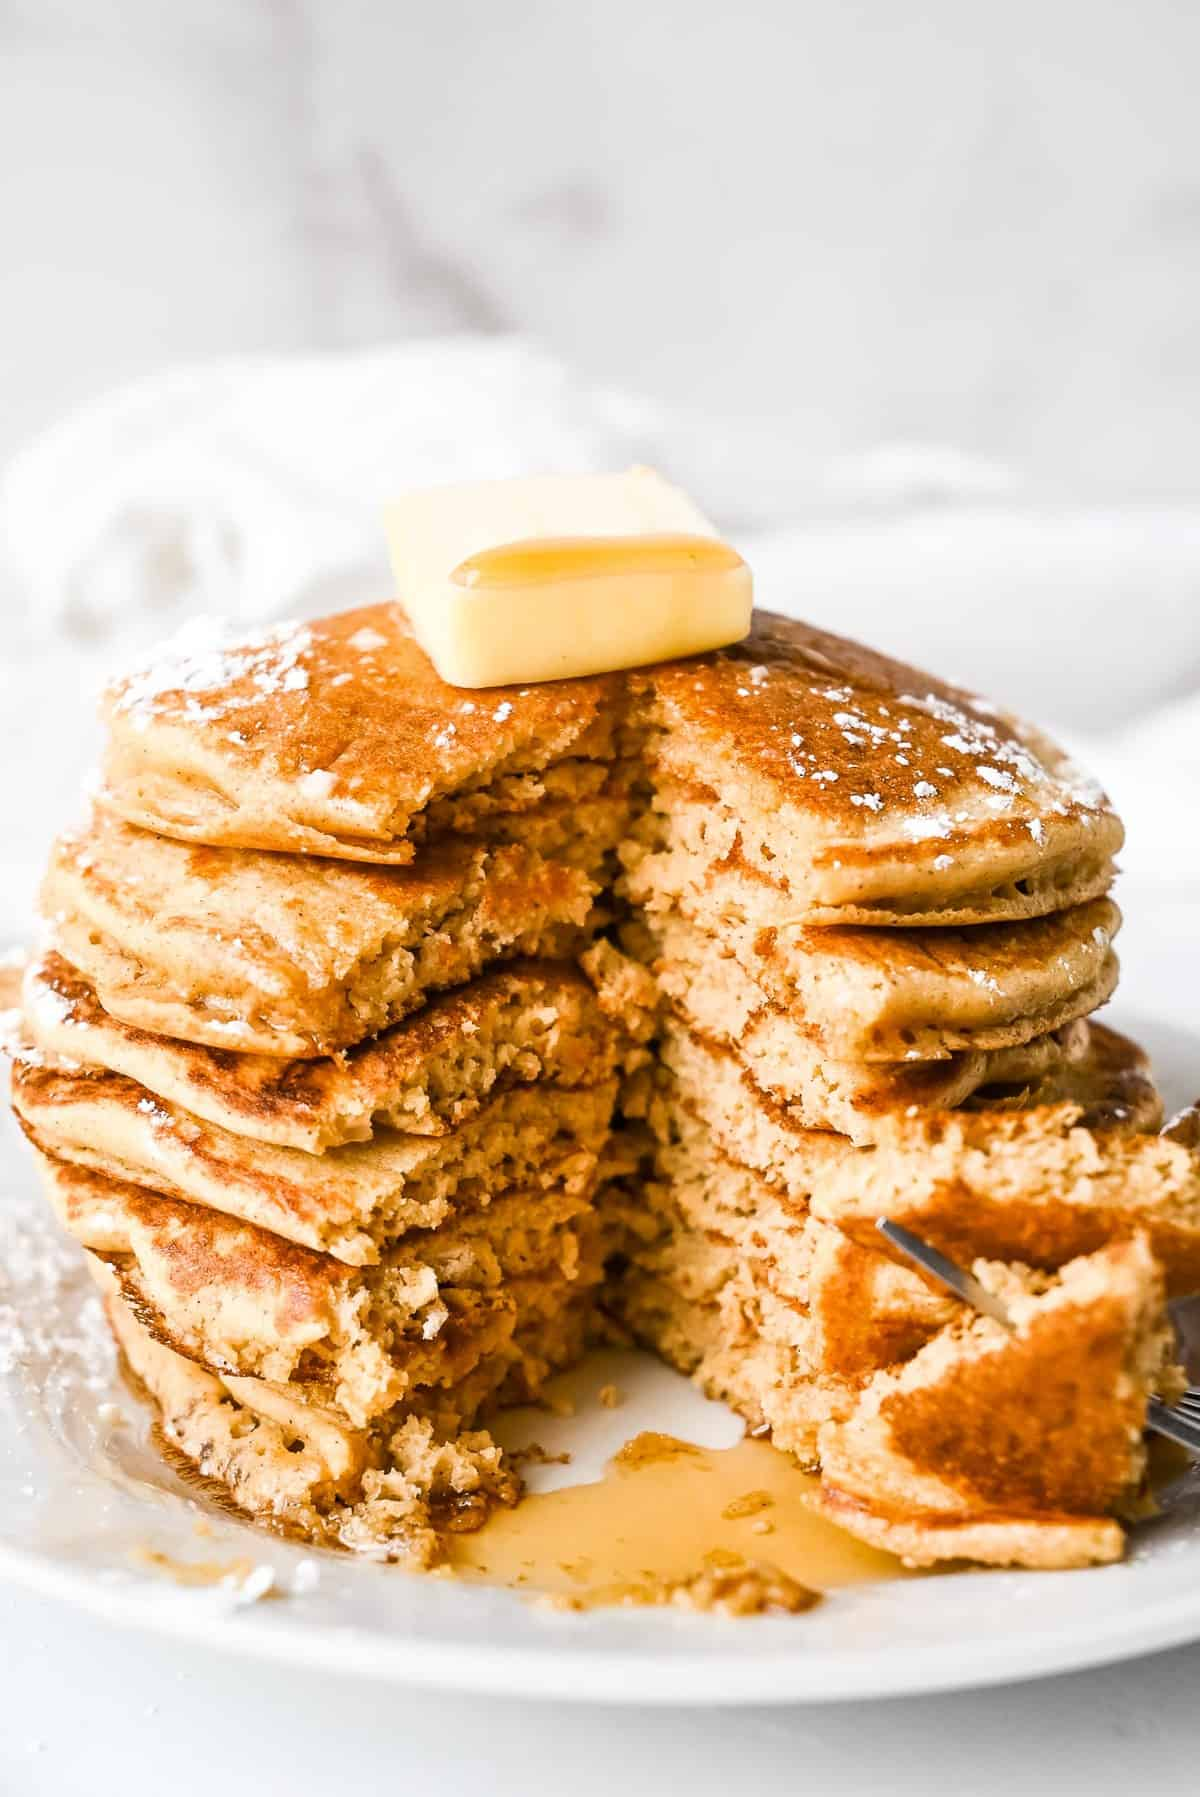 stack of pancakes with a large cut to see the inside